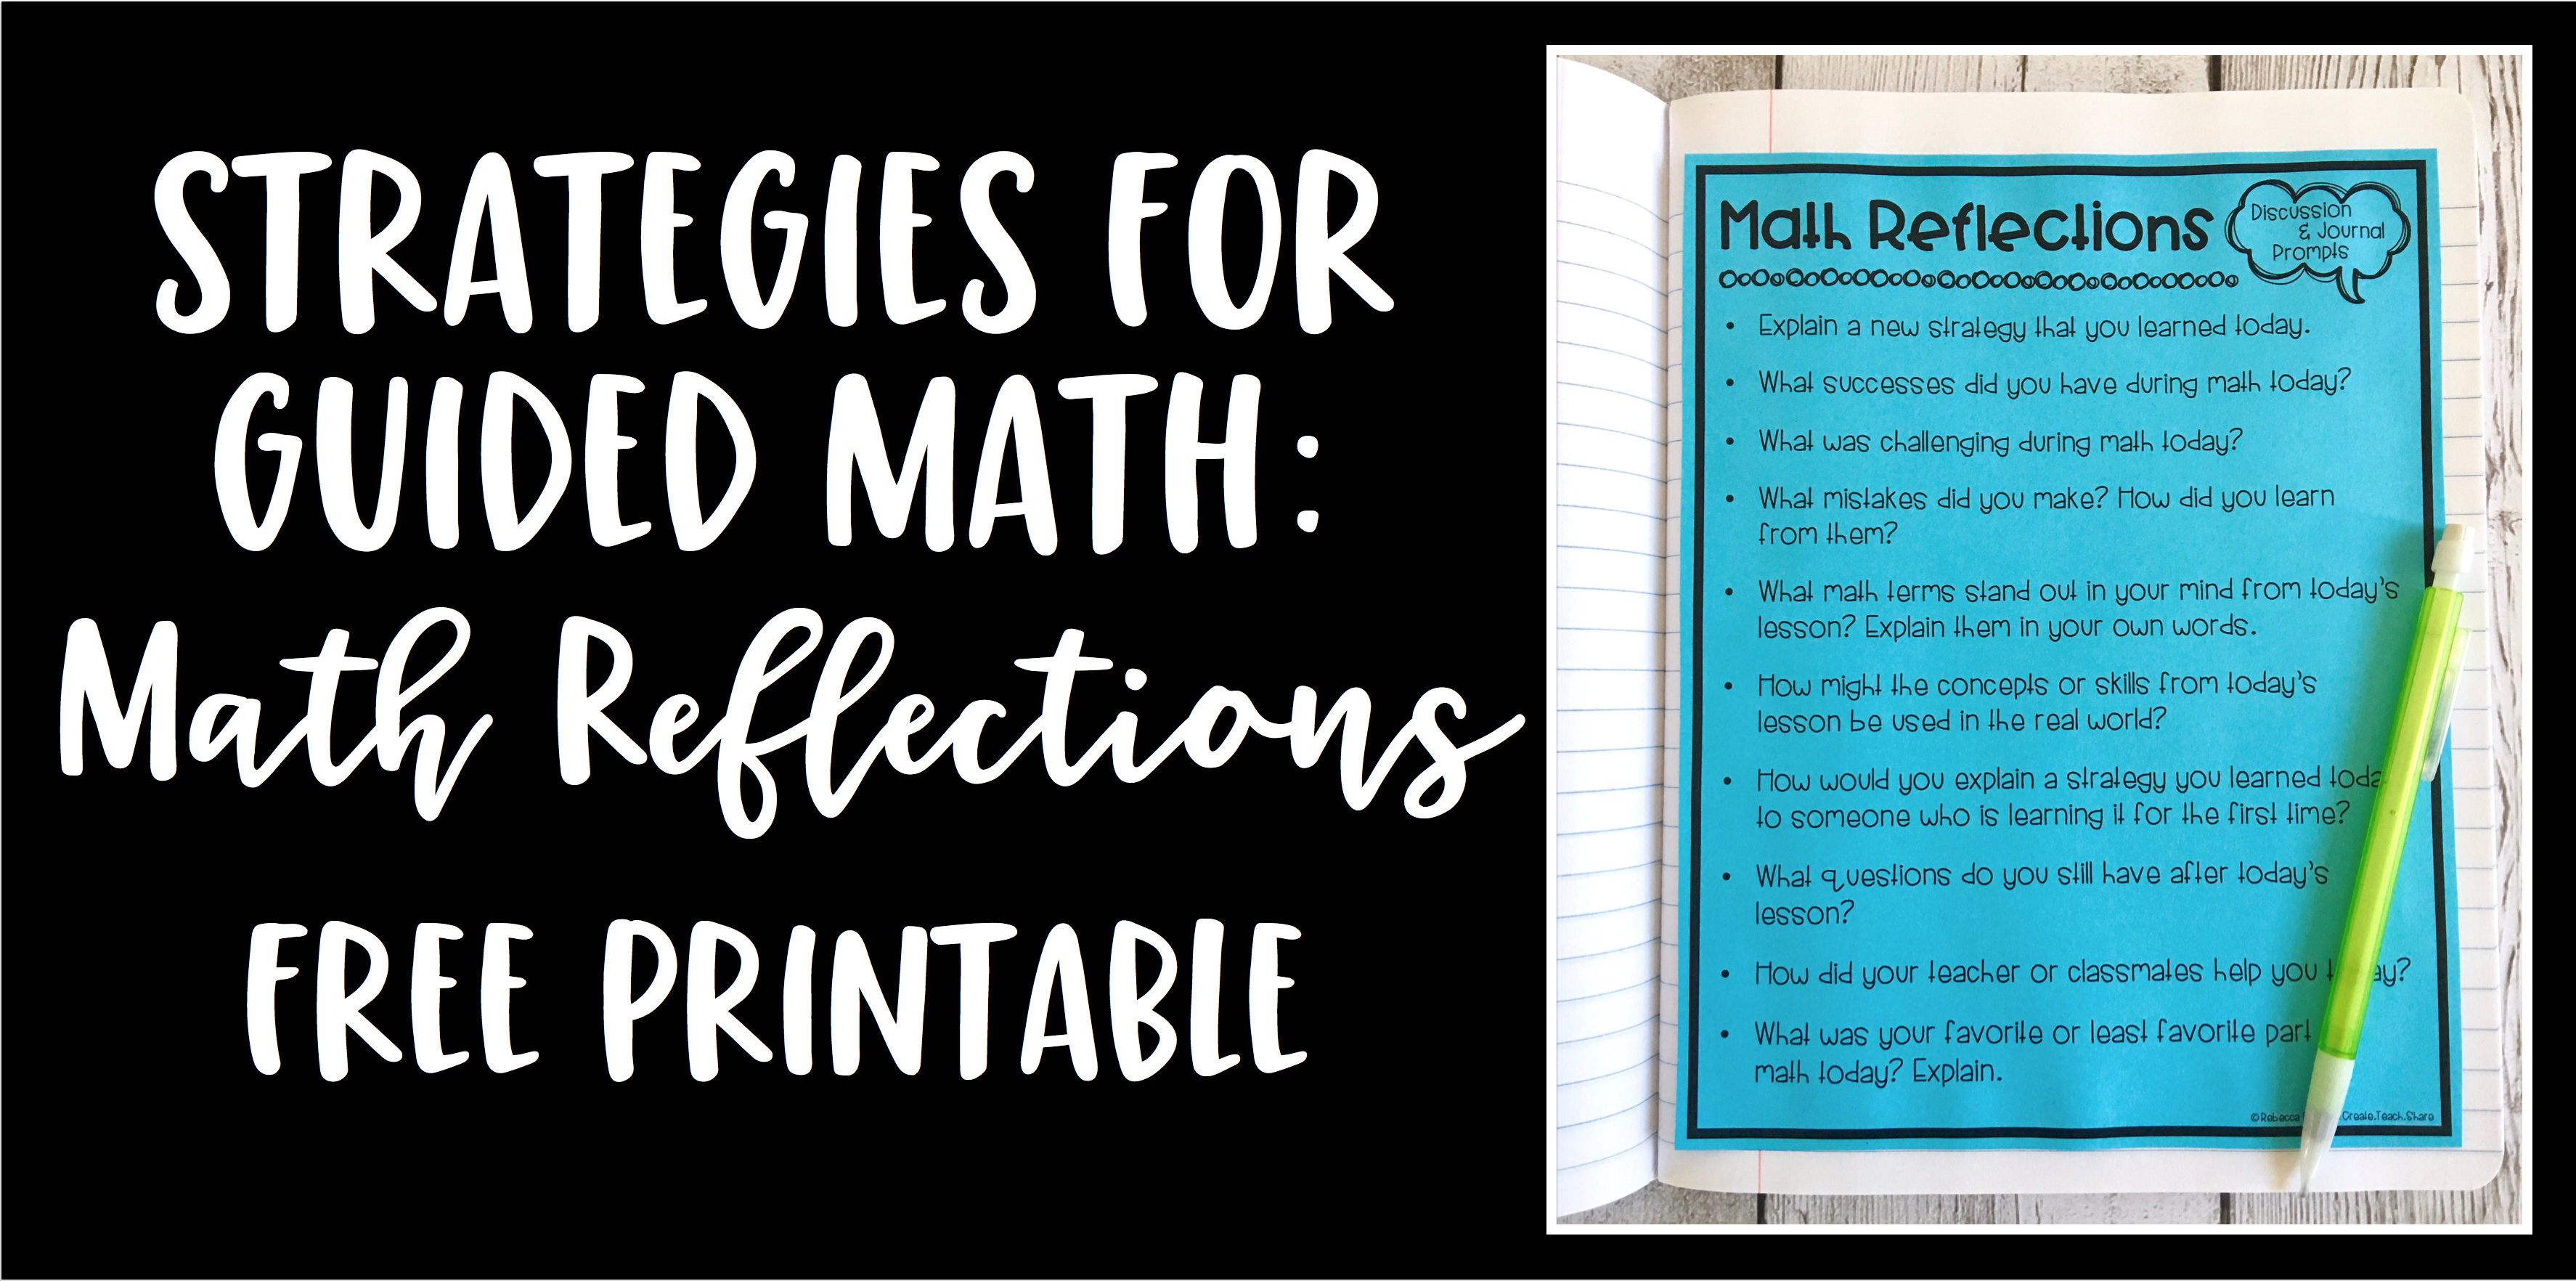 Smashing Strategies for Guided Math: Daily Reflections